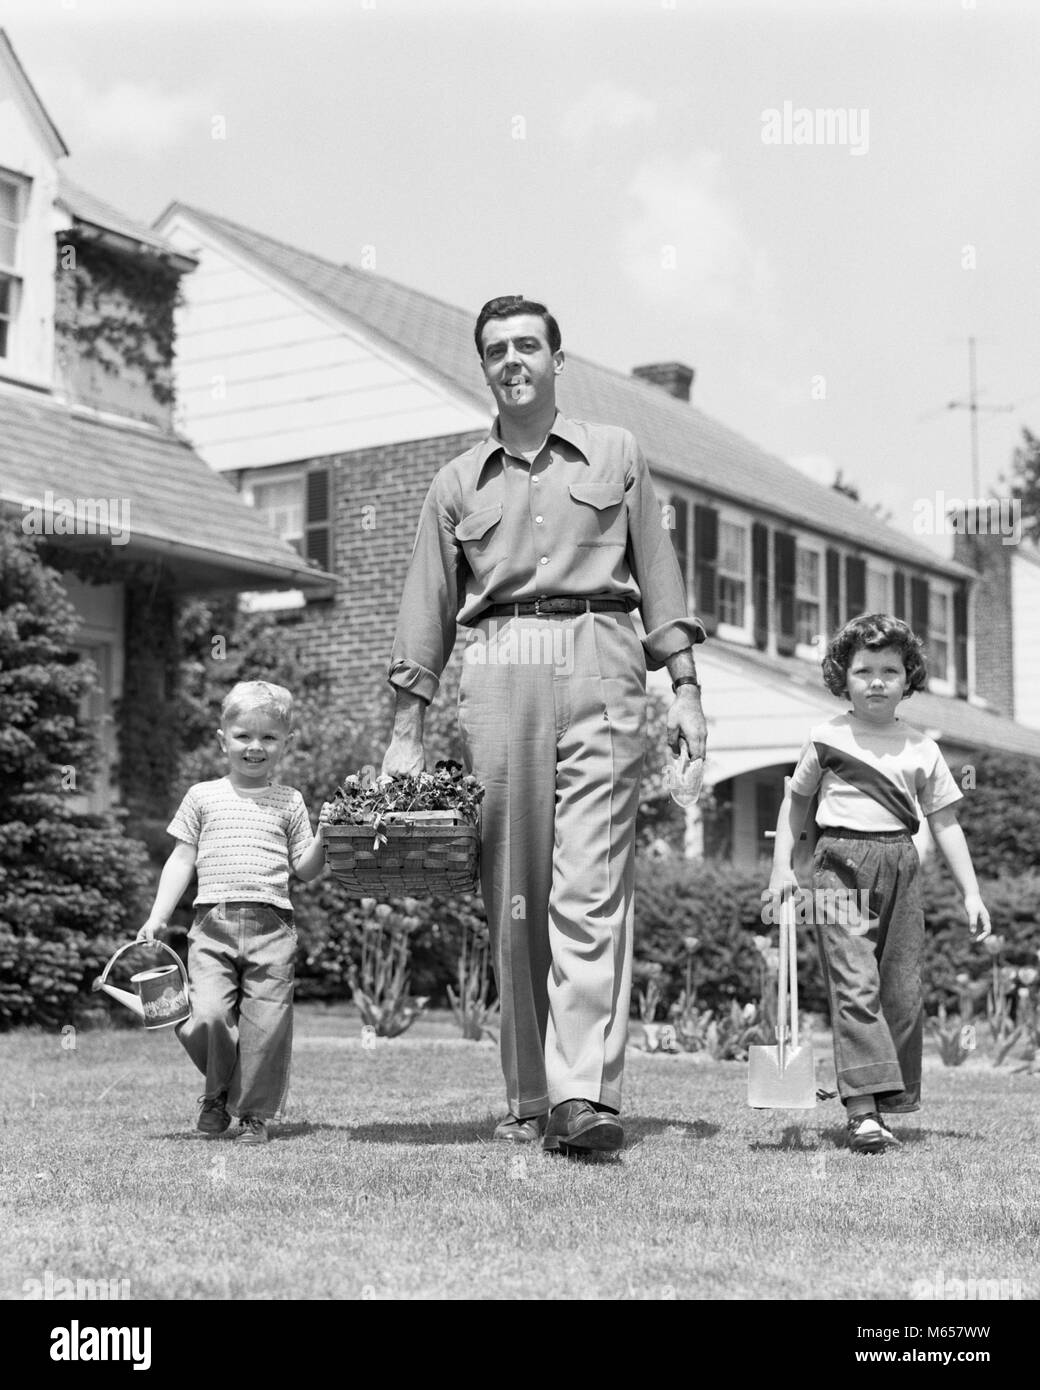 1950s FATHER WITH TWO CHILDREN DAUGHTER AND SON WALKING IN FRONT YARD CARRYING GARDENING TOOLS LOOKING AT CAMERA - Stock Image